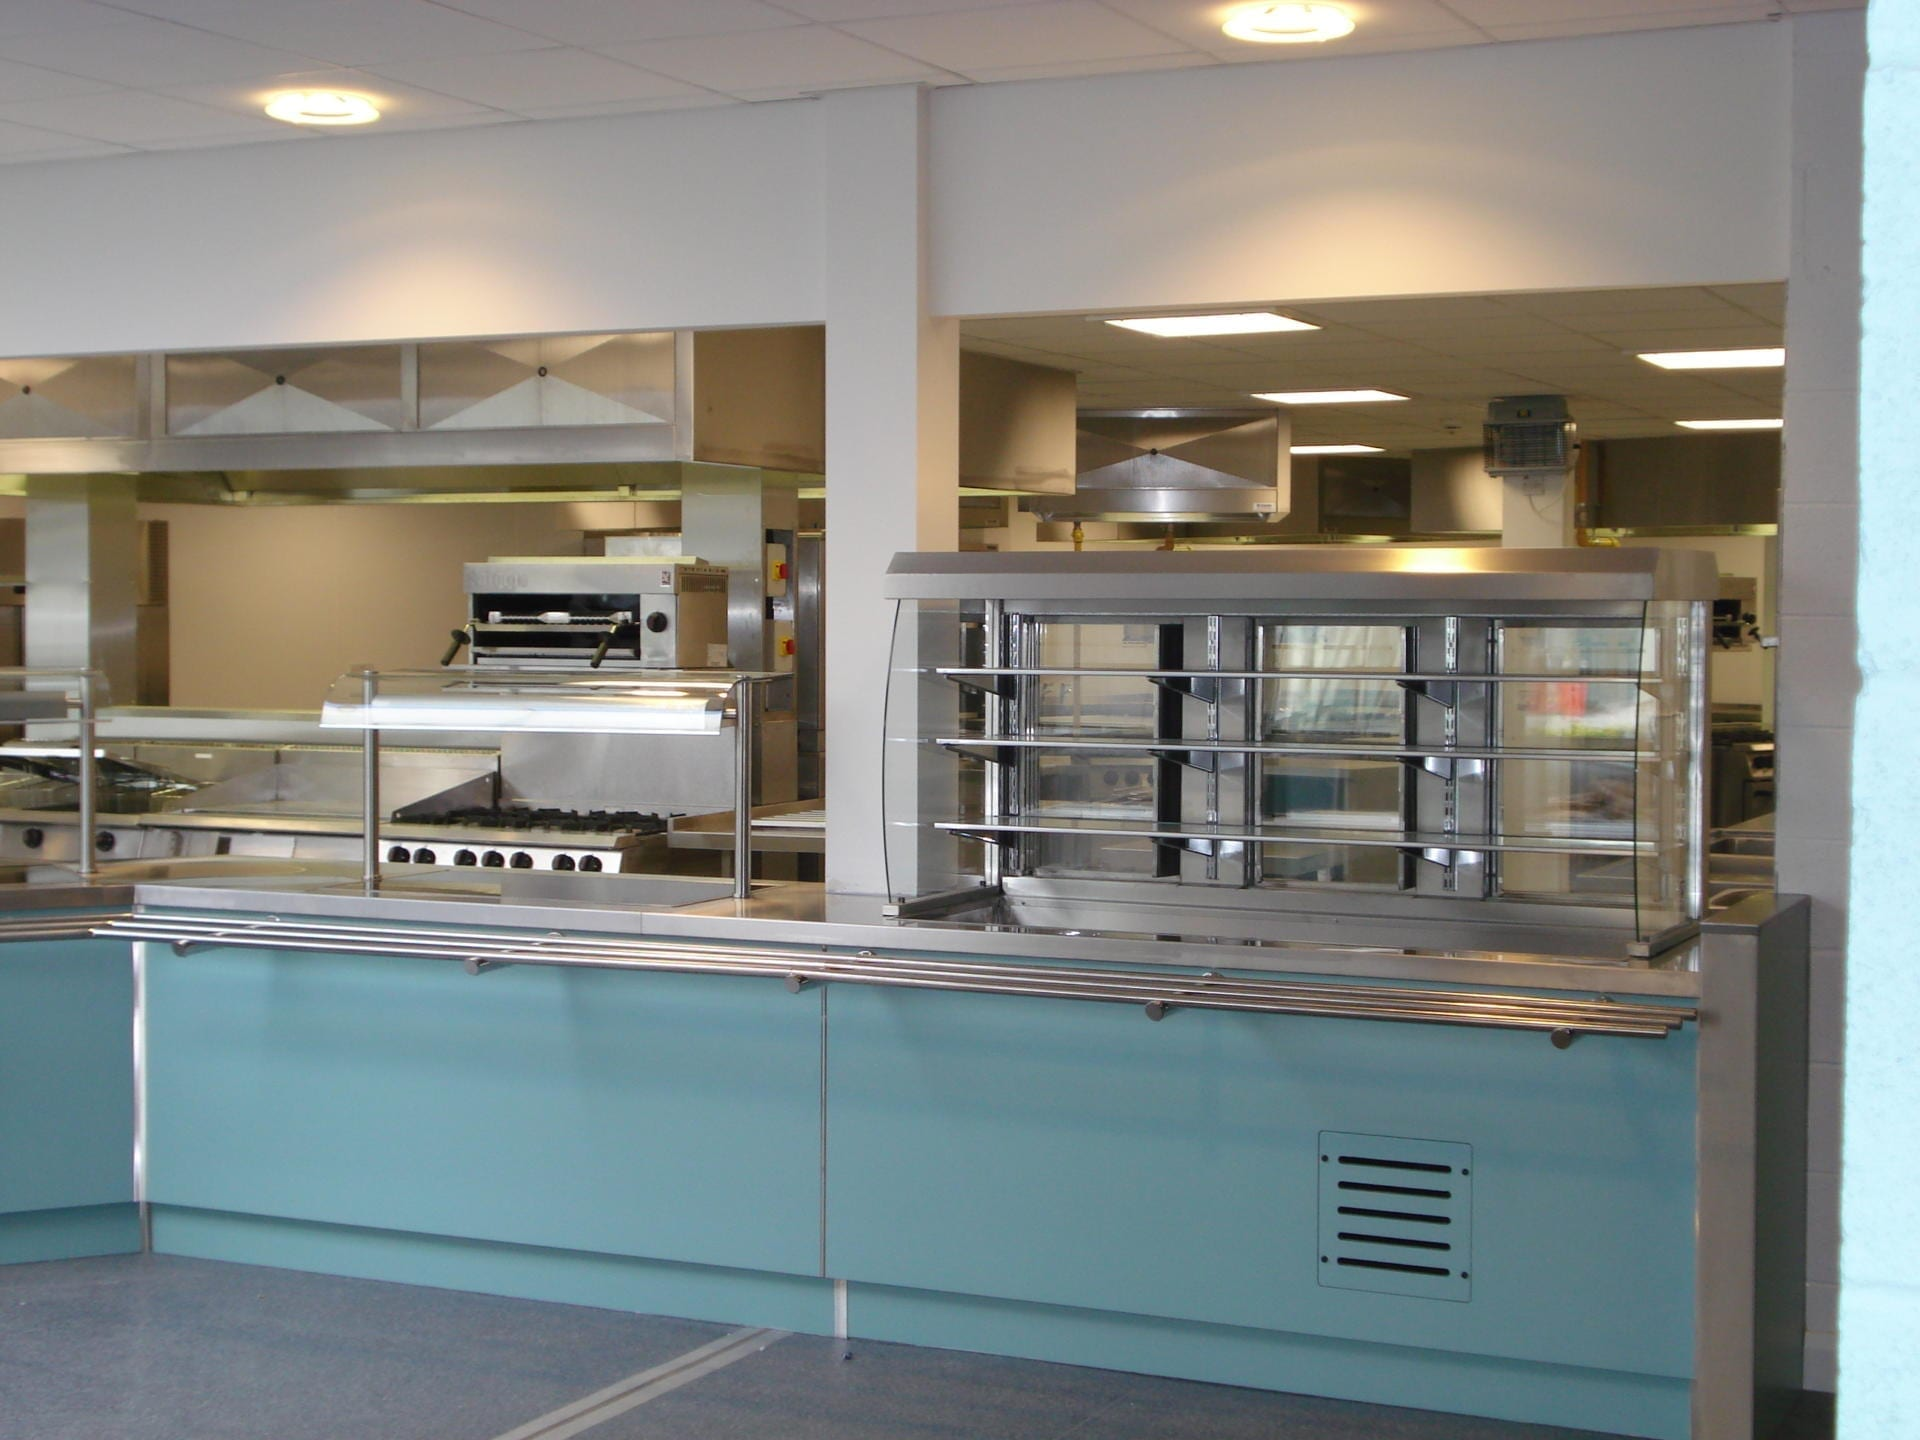 Gloucester-College-Gloucester-Servery-Stainless-Steel-fabrication-cooking-Foodtech-teaching-spacecatering_6